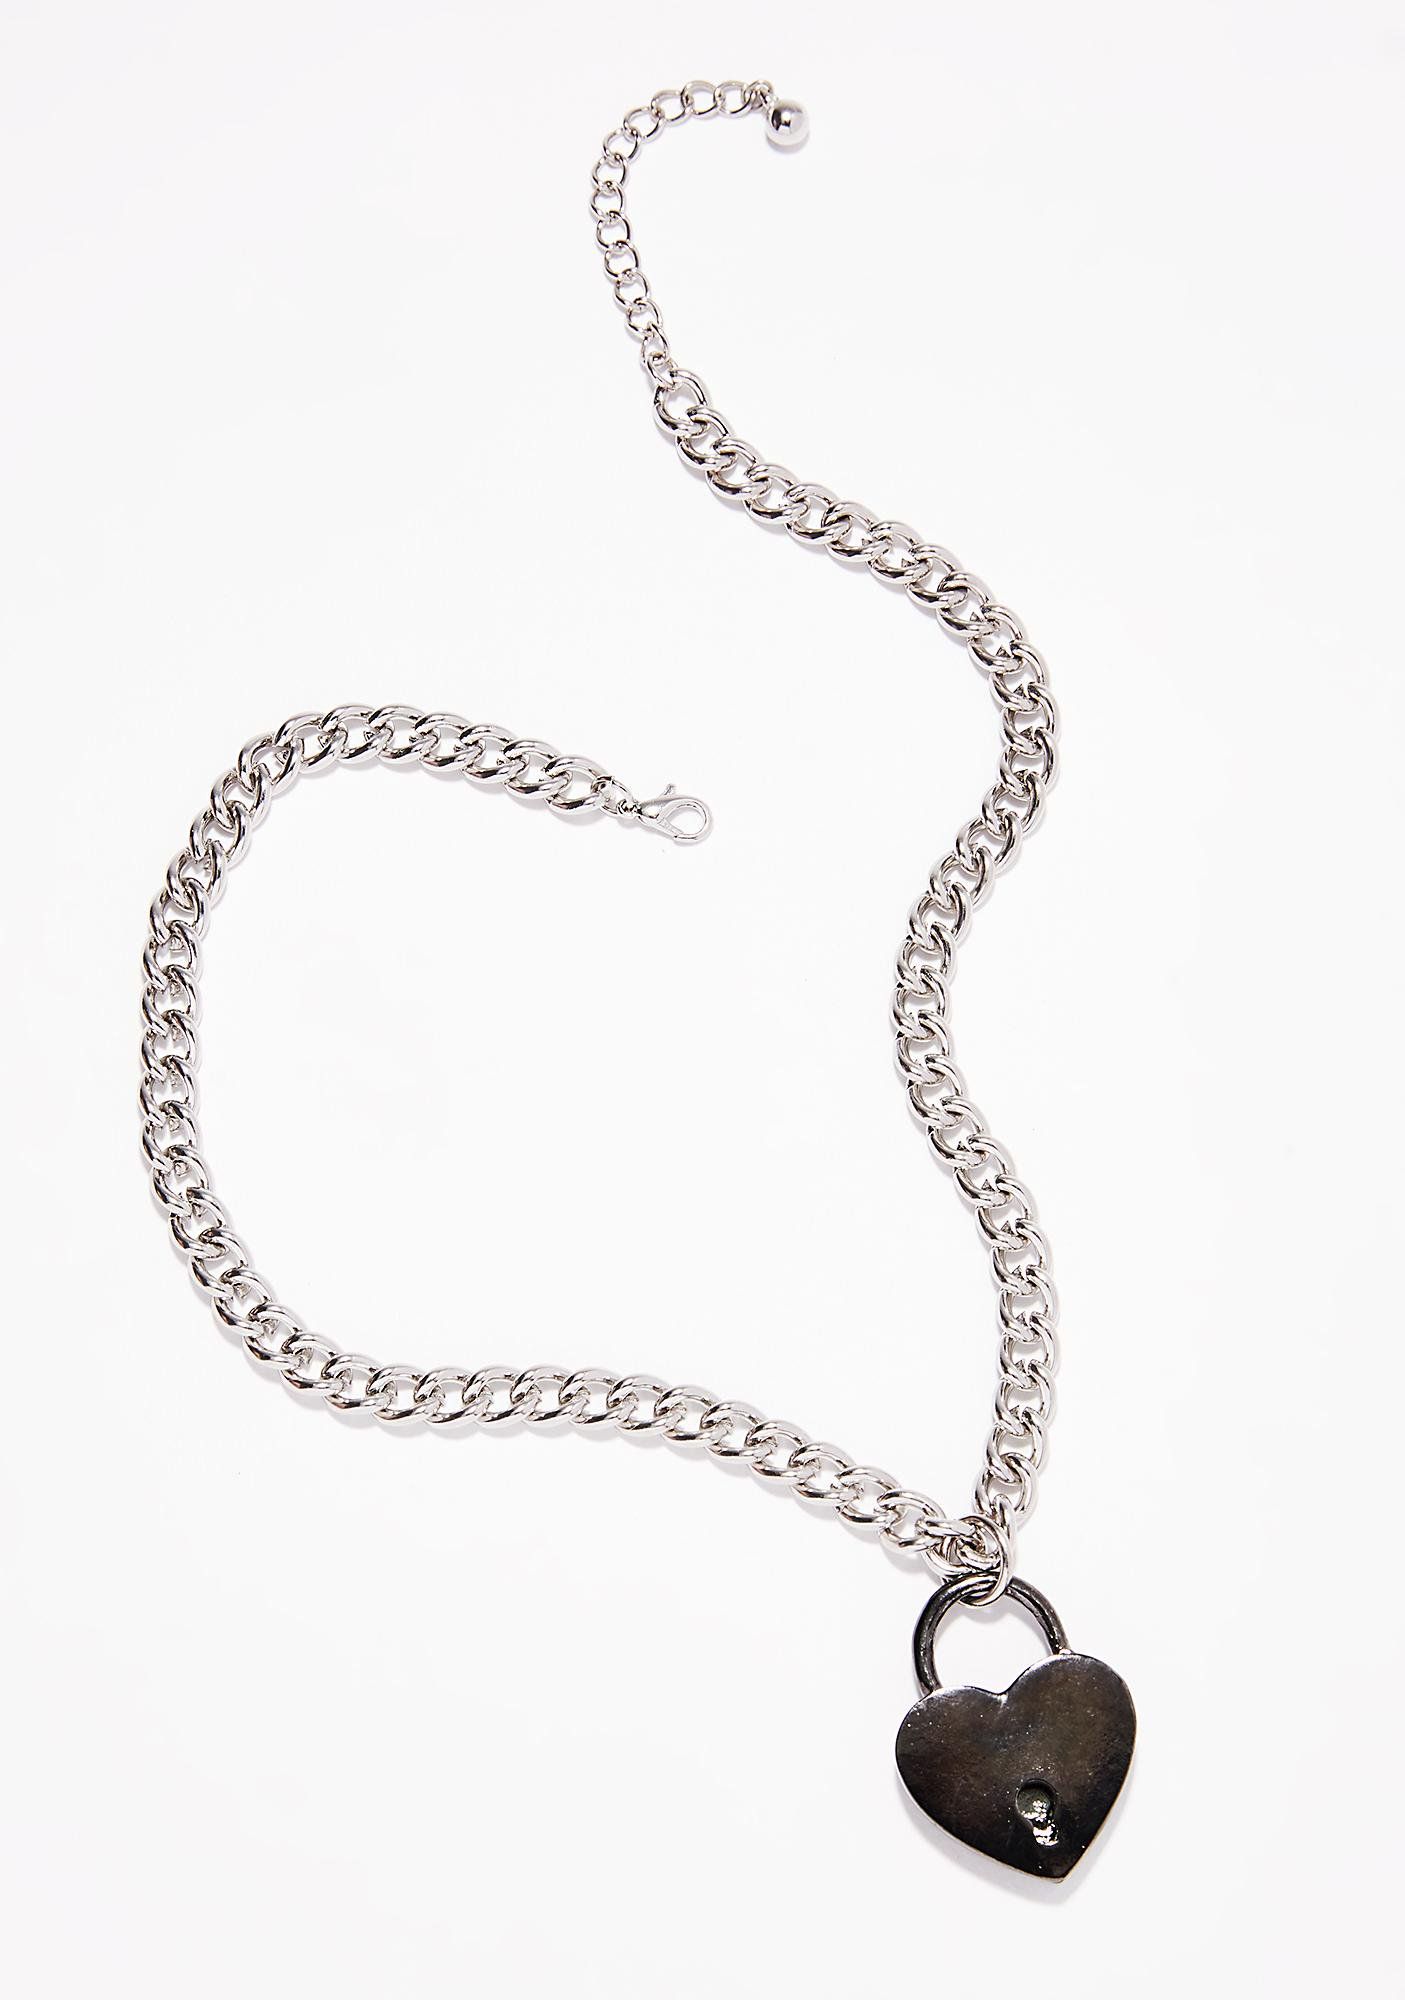 Key To My Heart Necklace With Regard To Most Current Heart Padlock Locket Element Necklaces (View 2 of 25)